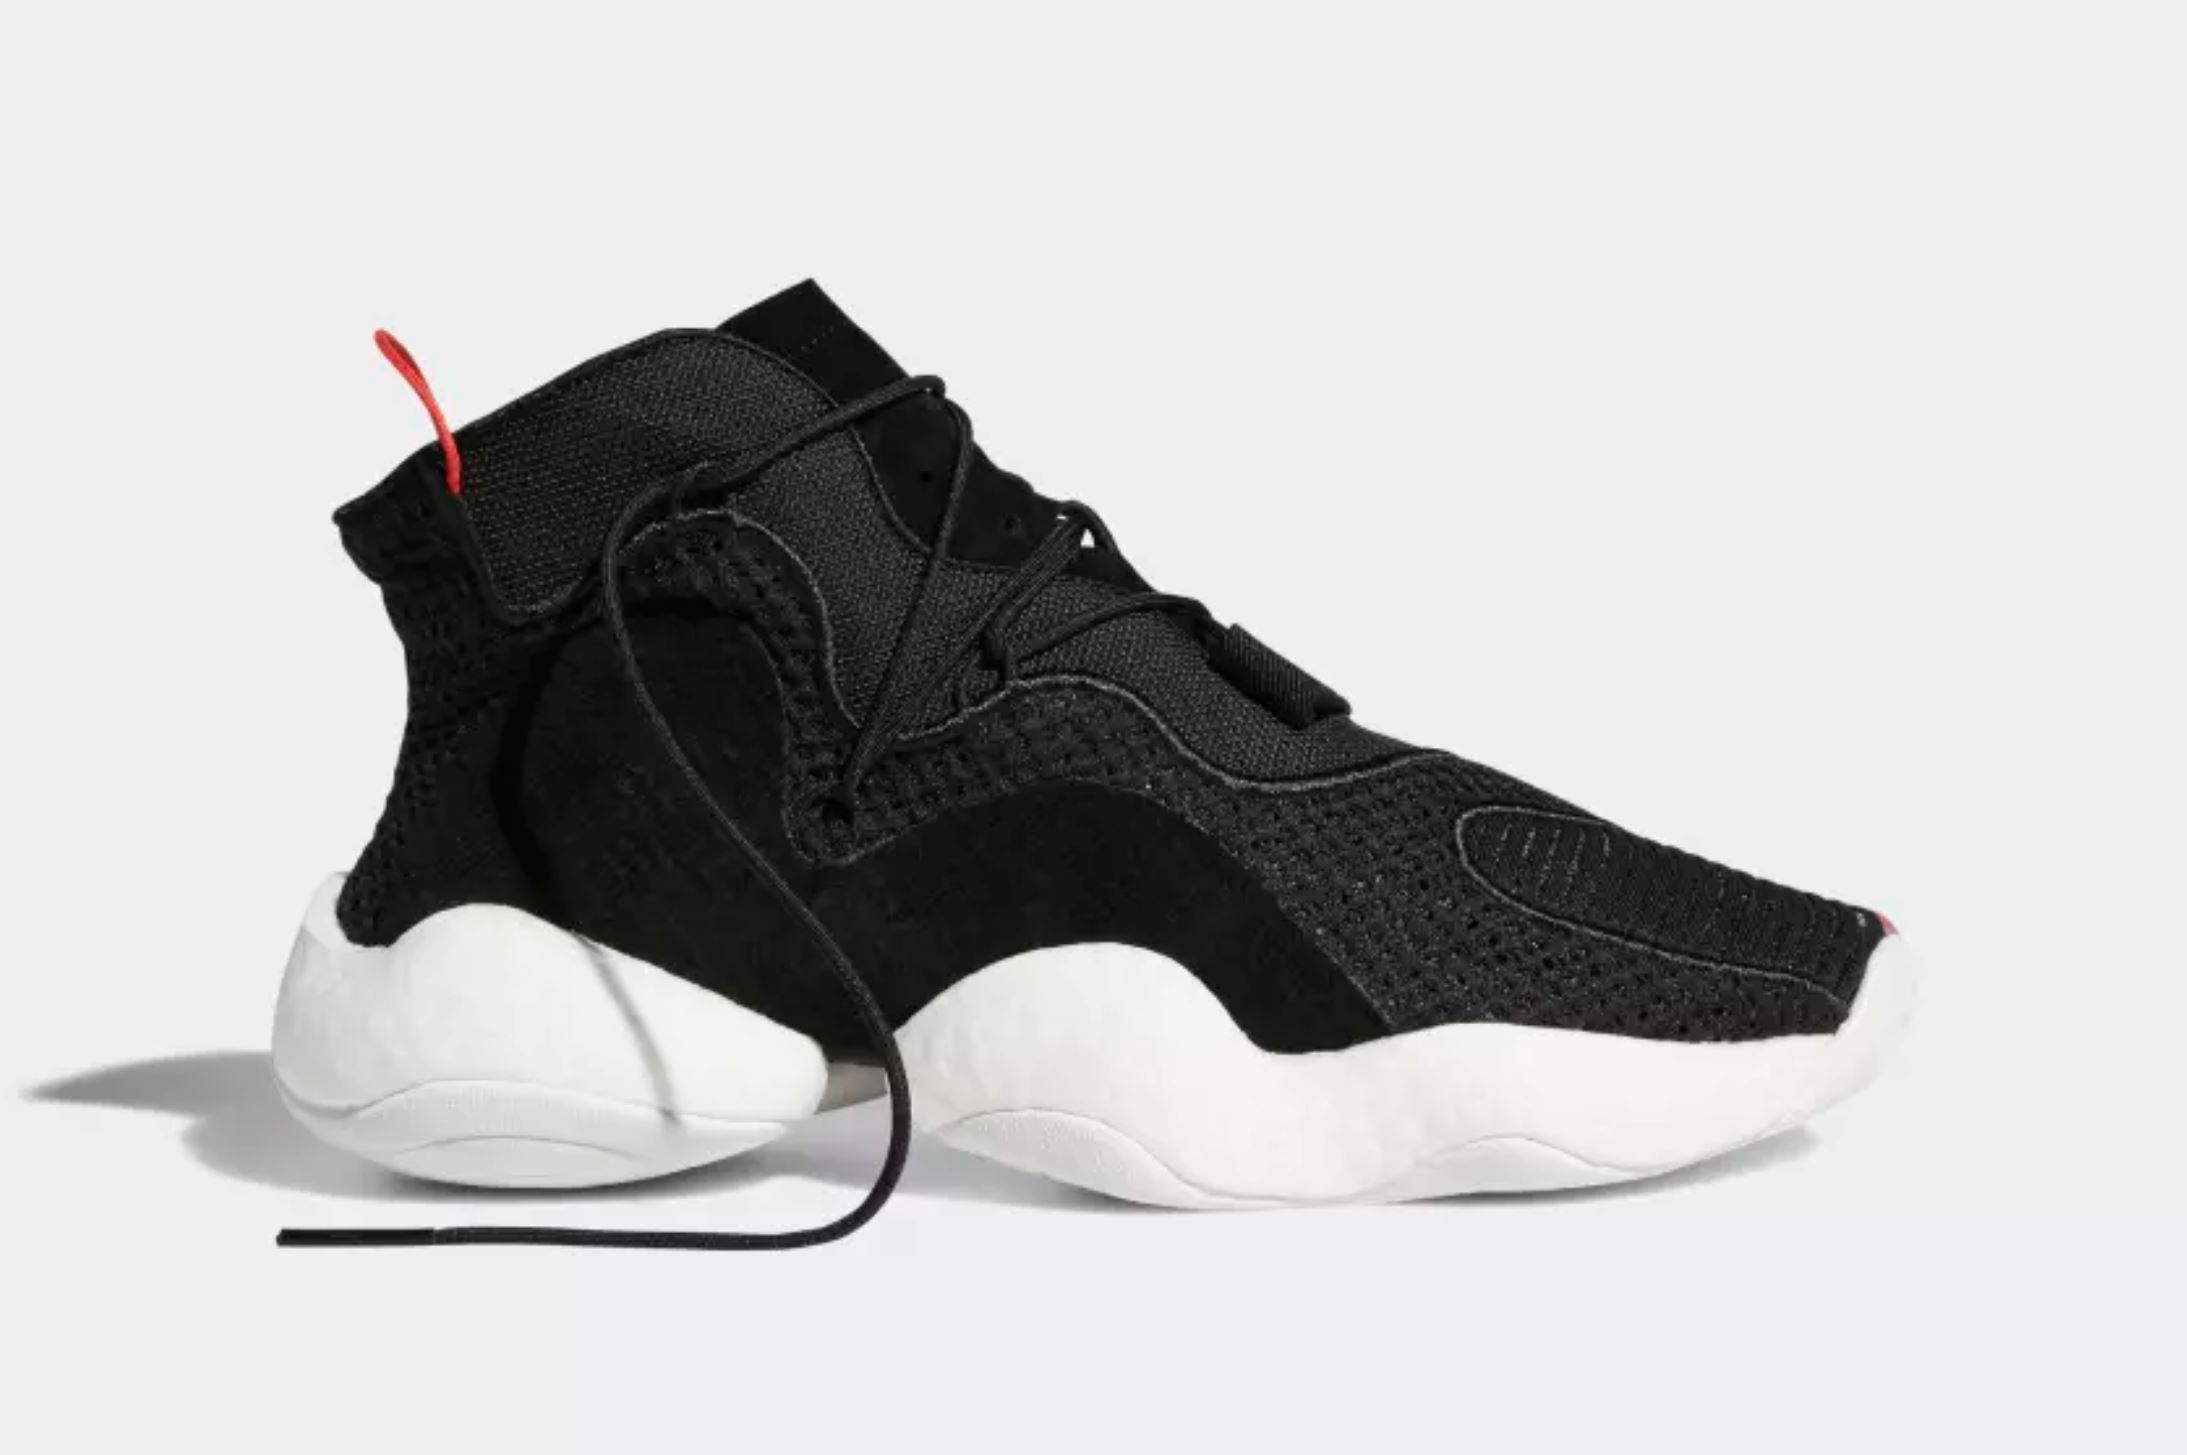 adidas crazy BYW black red 5